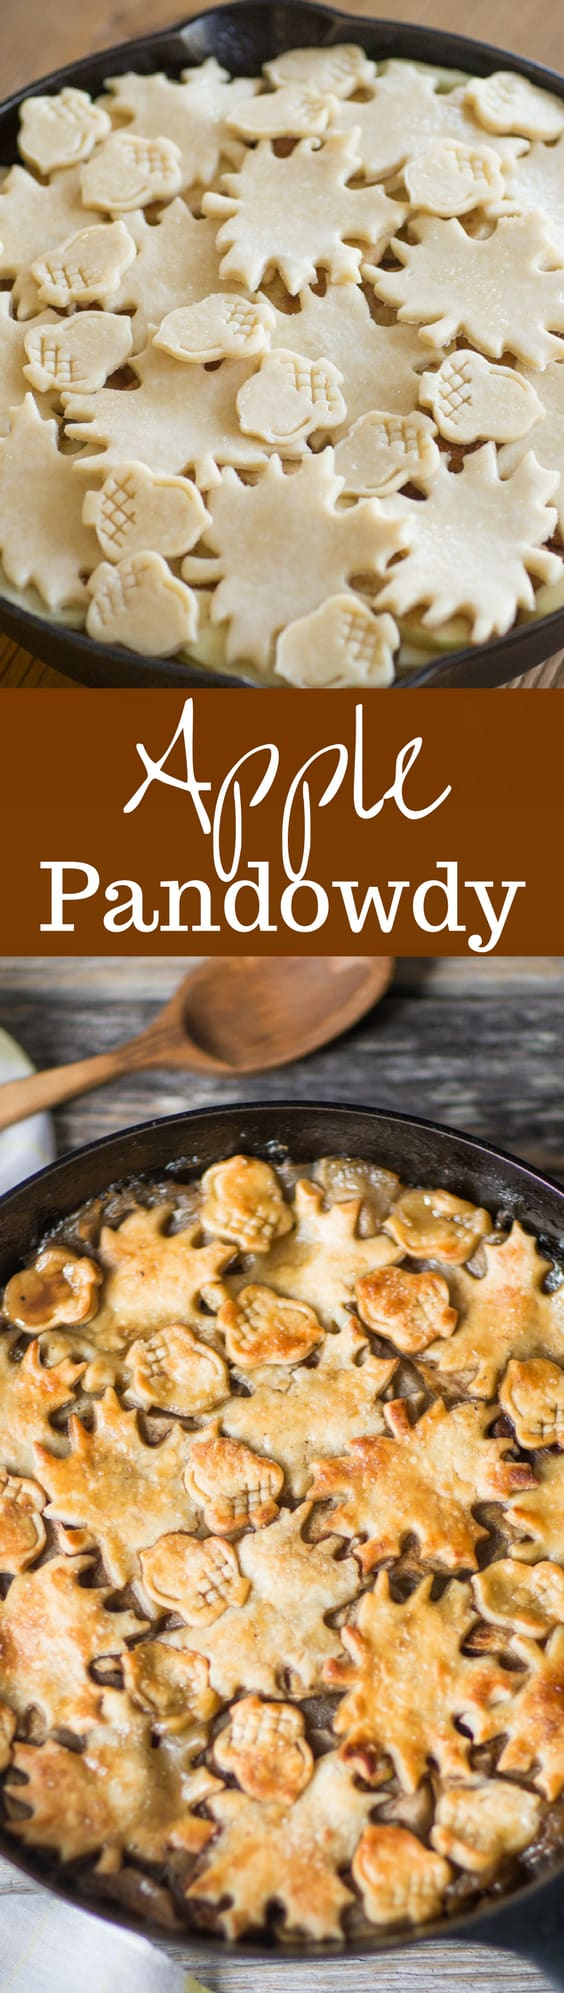 Apple Pandowdy (or Apple Pan Dowdy) - an old-fashioned skillet apple dessert with the crust pressed into the juices part-way through baking.  www.savingdessert.com